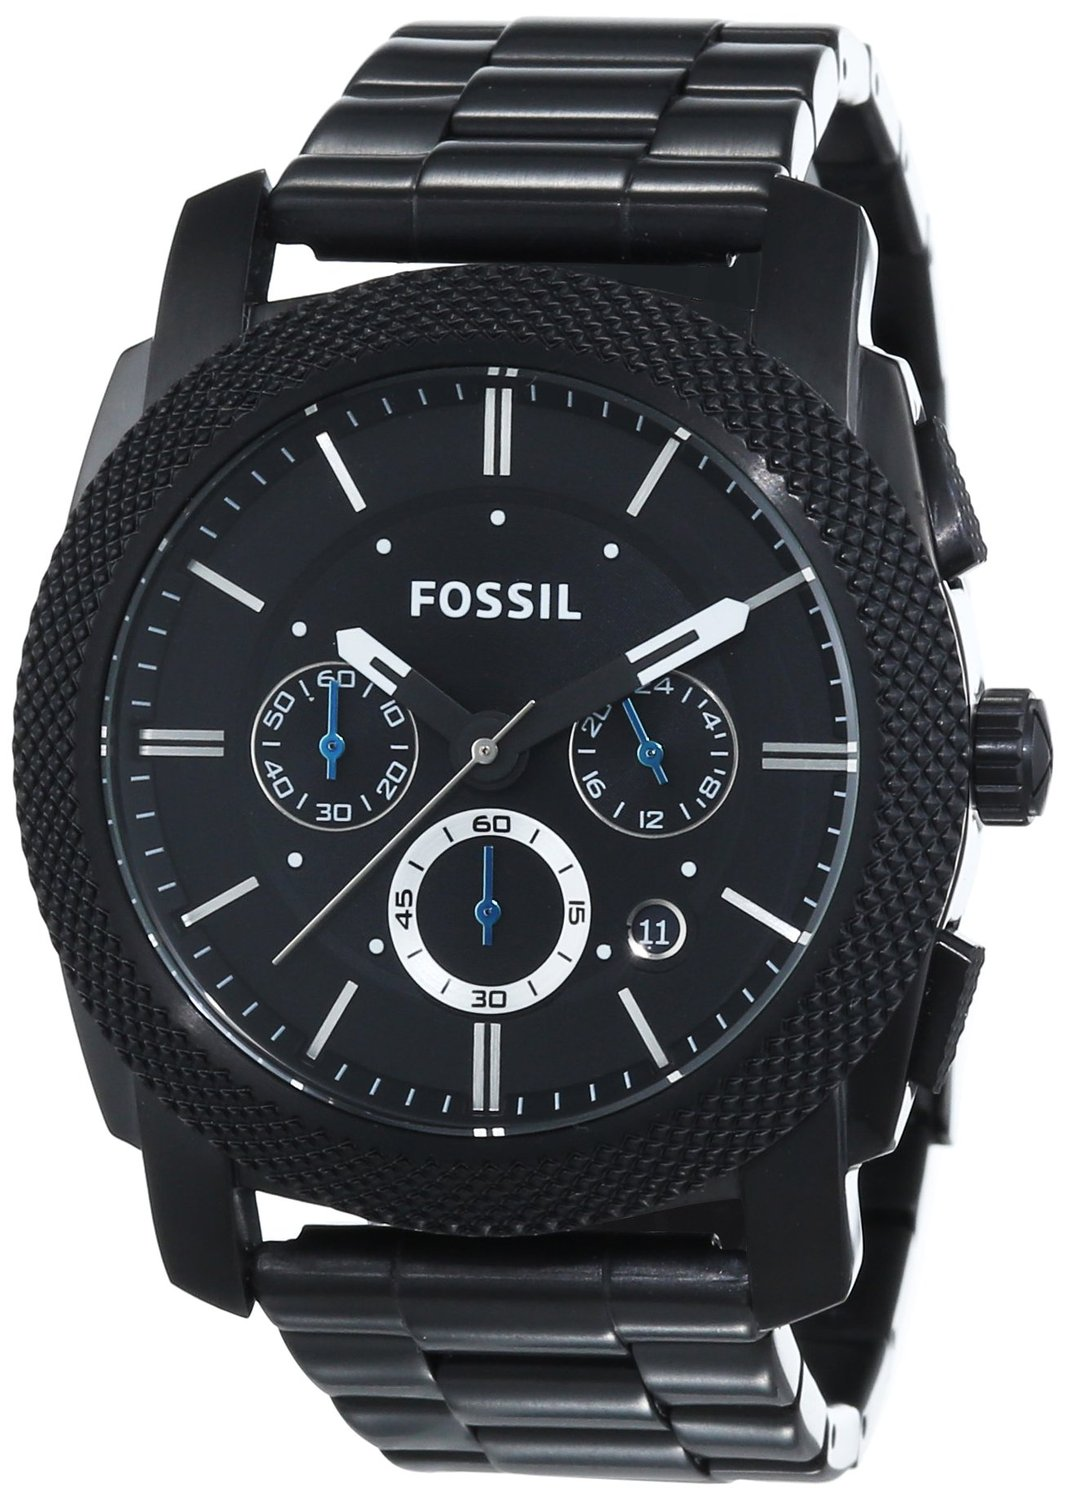 My Favorite Fossil Fashion Watches for Men